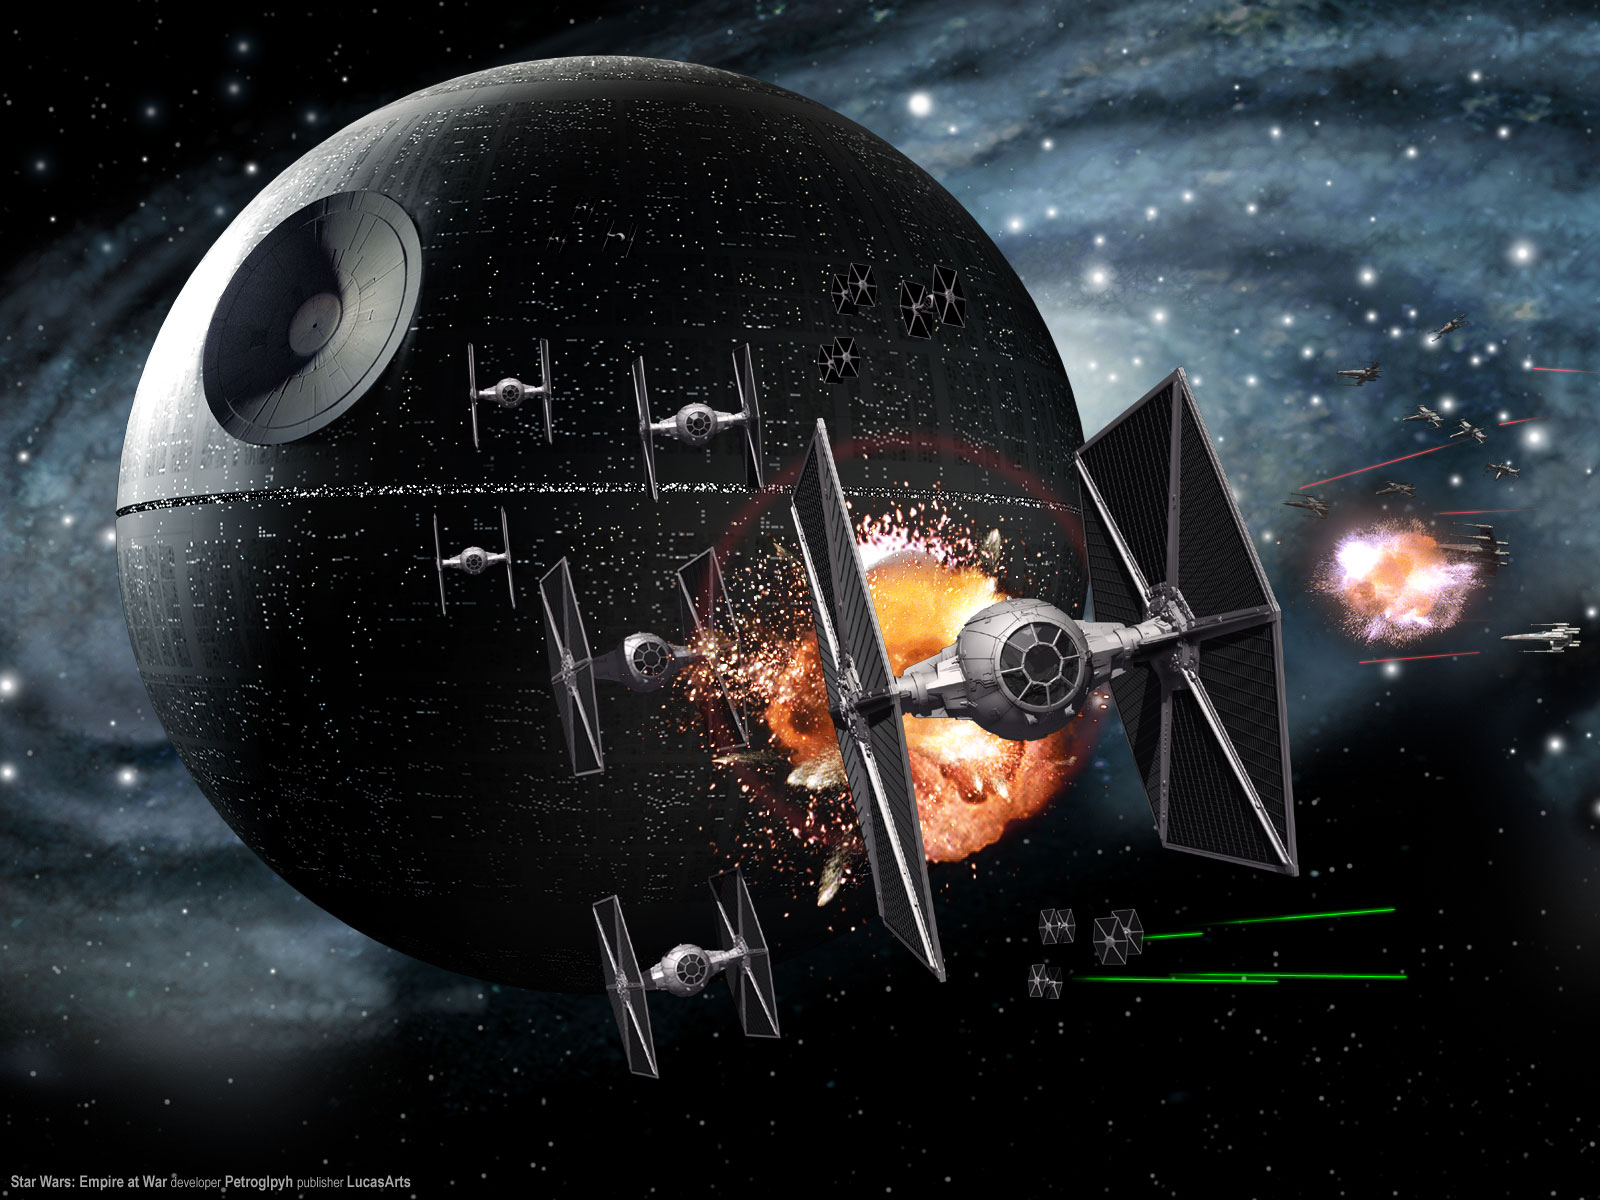 Epic Star Wars Space Battle Wallpaper